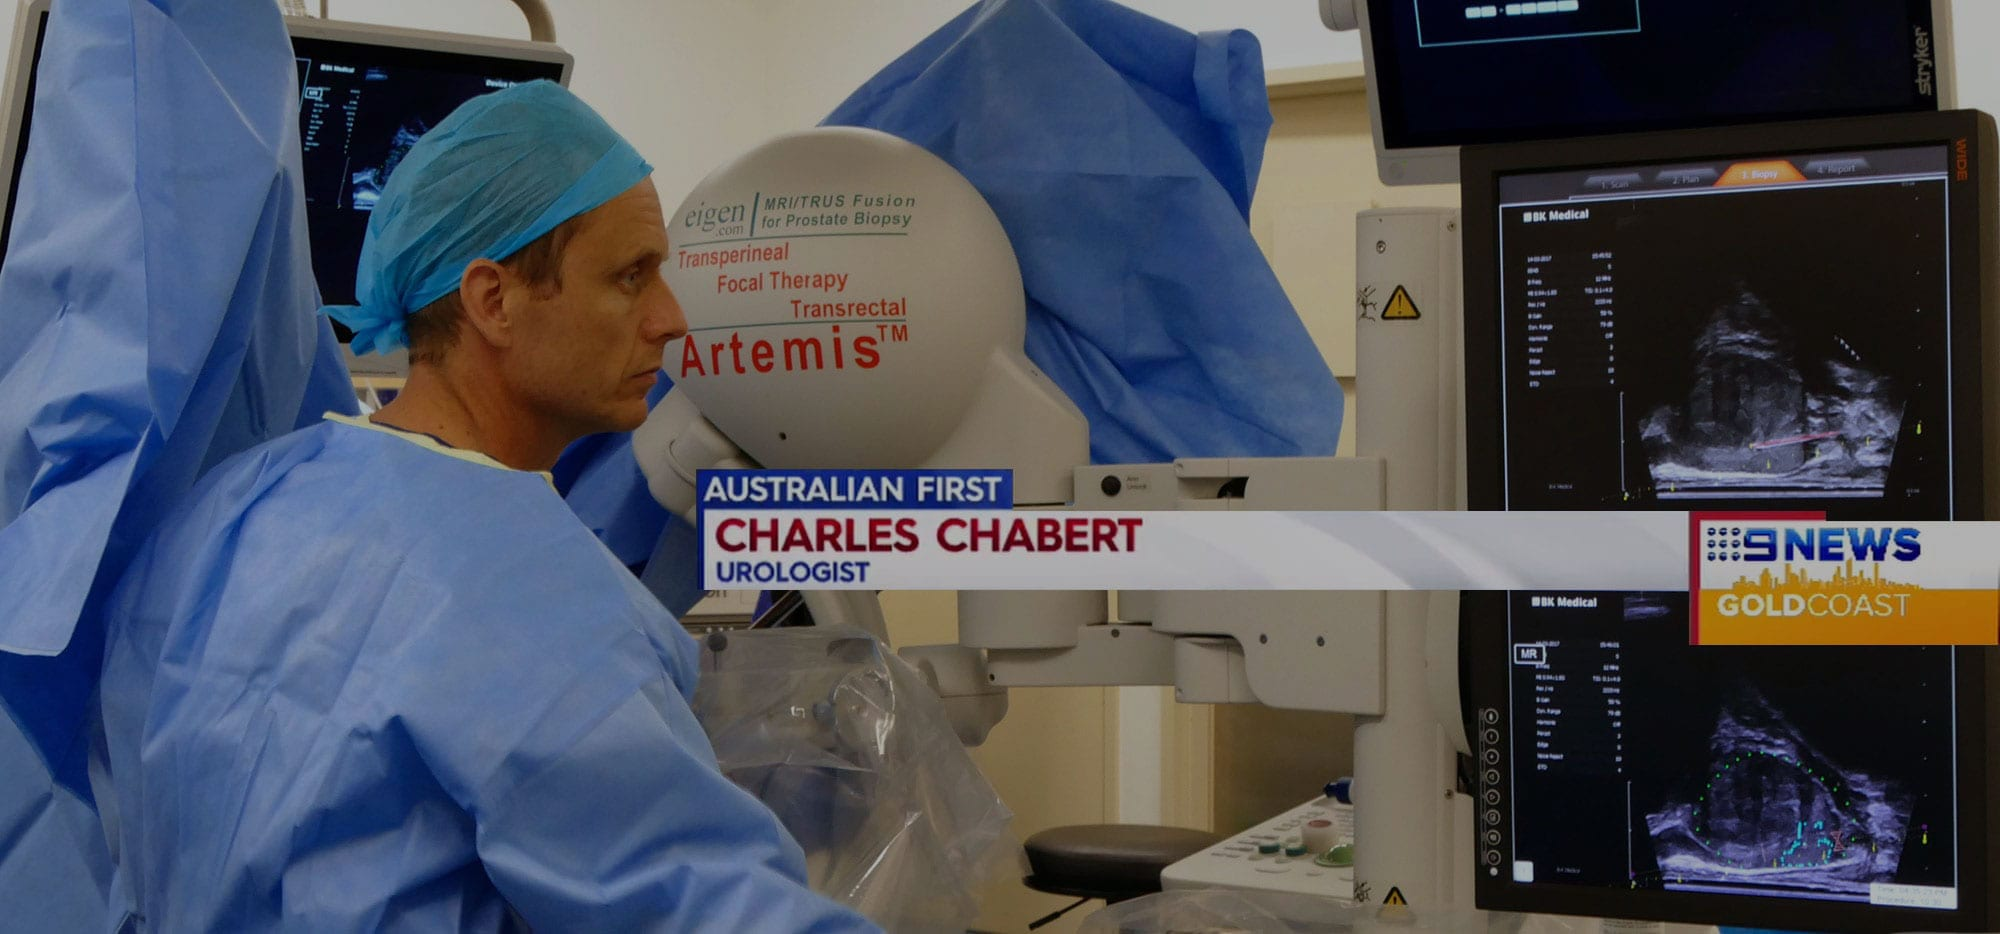 Australian-First-9News-Gold-Coast-Artemis-for-prostate-biopsies-The-Prostate-Clinic-Dr-Charles-Chabert-min